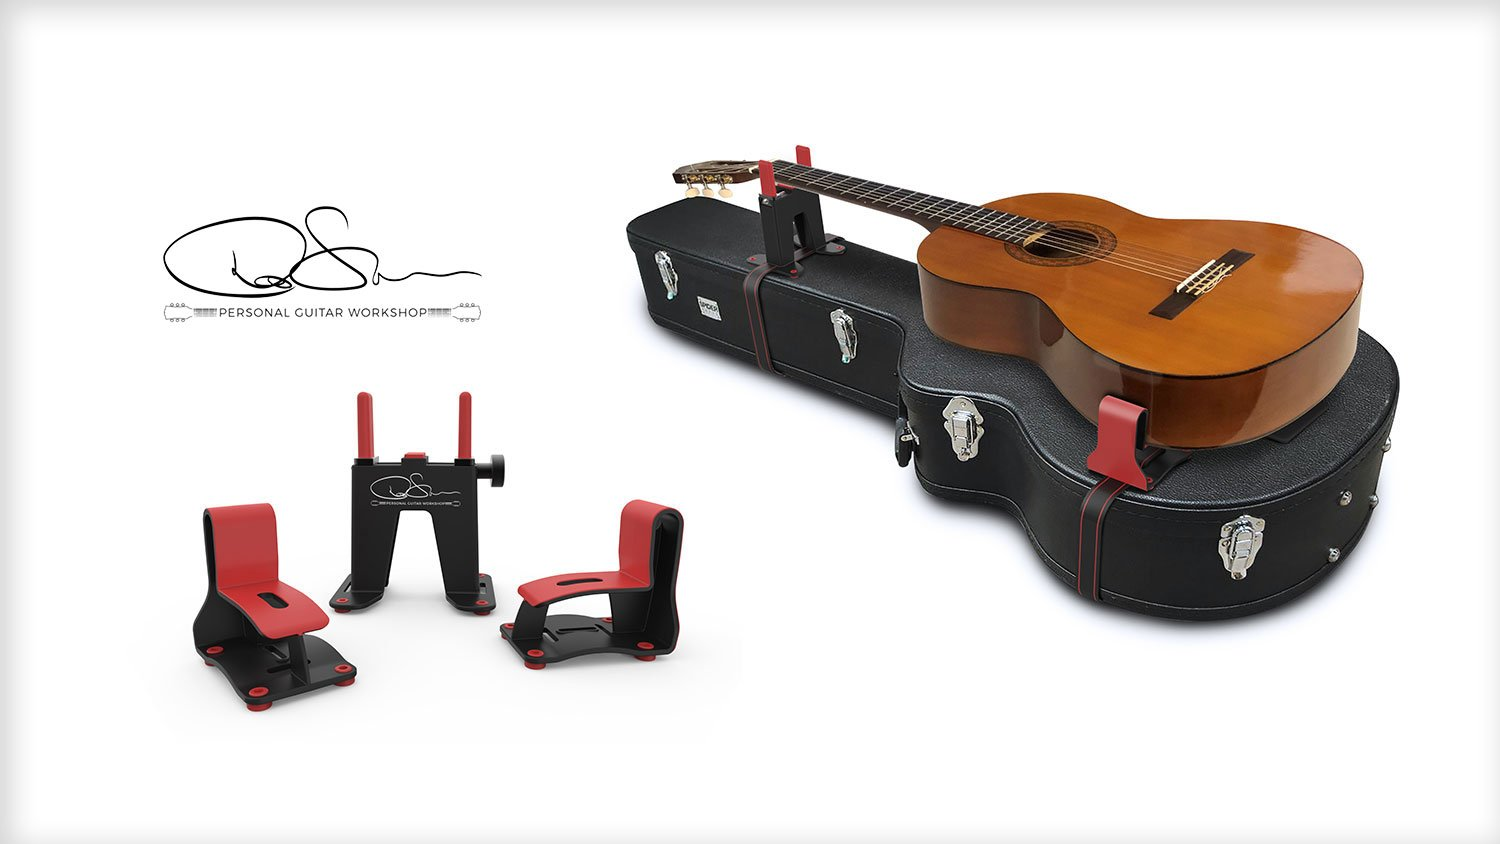 IPS-Designed Portable Guitar Workshop Showcased at the NAMM Show